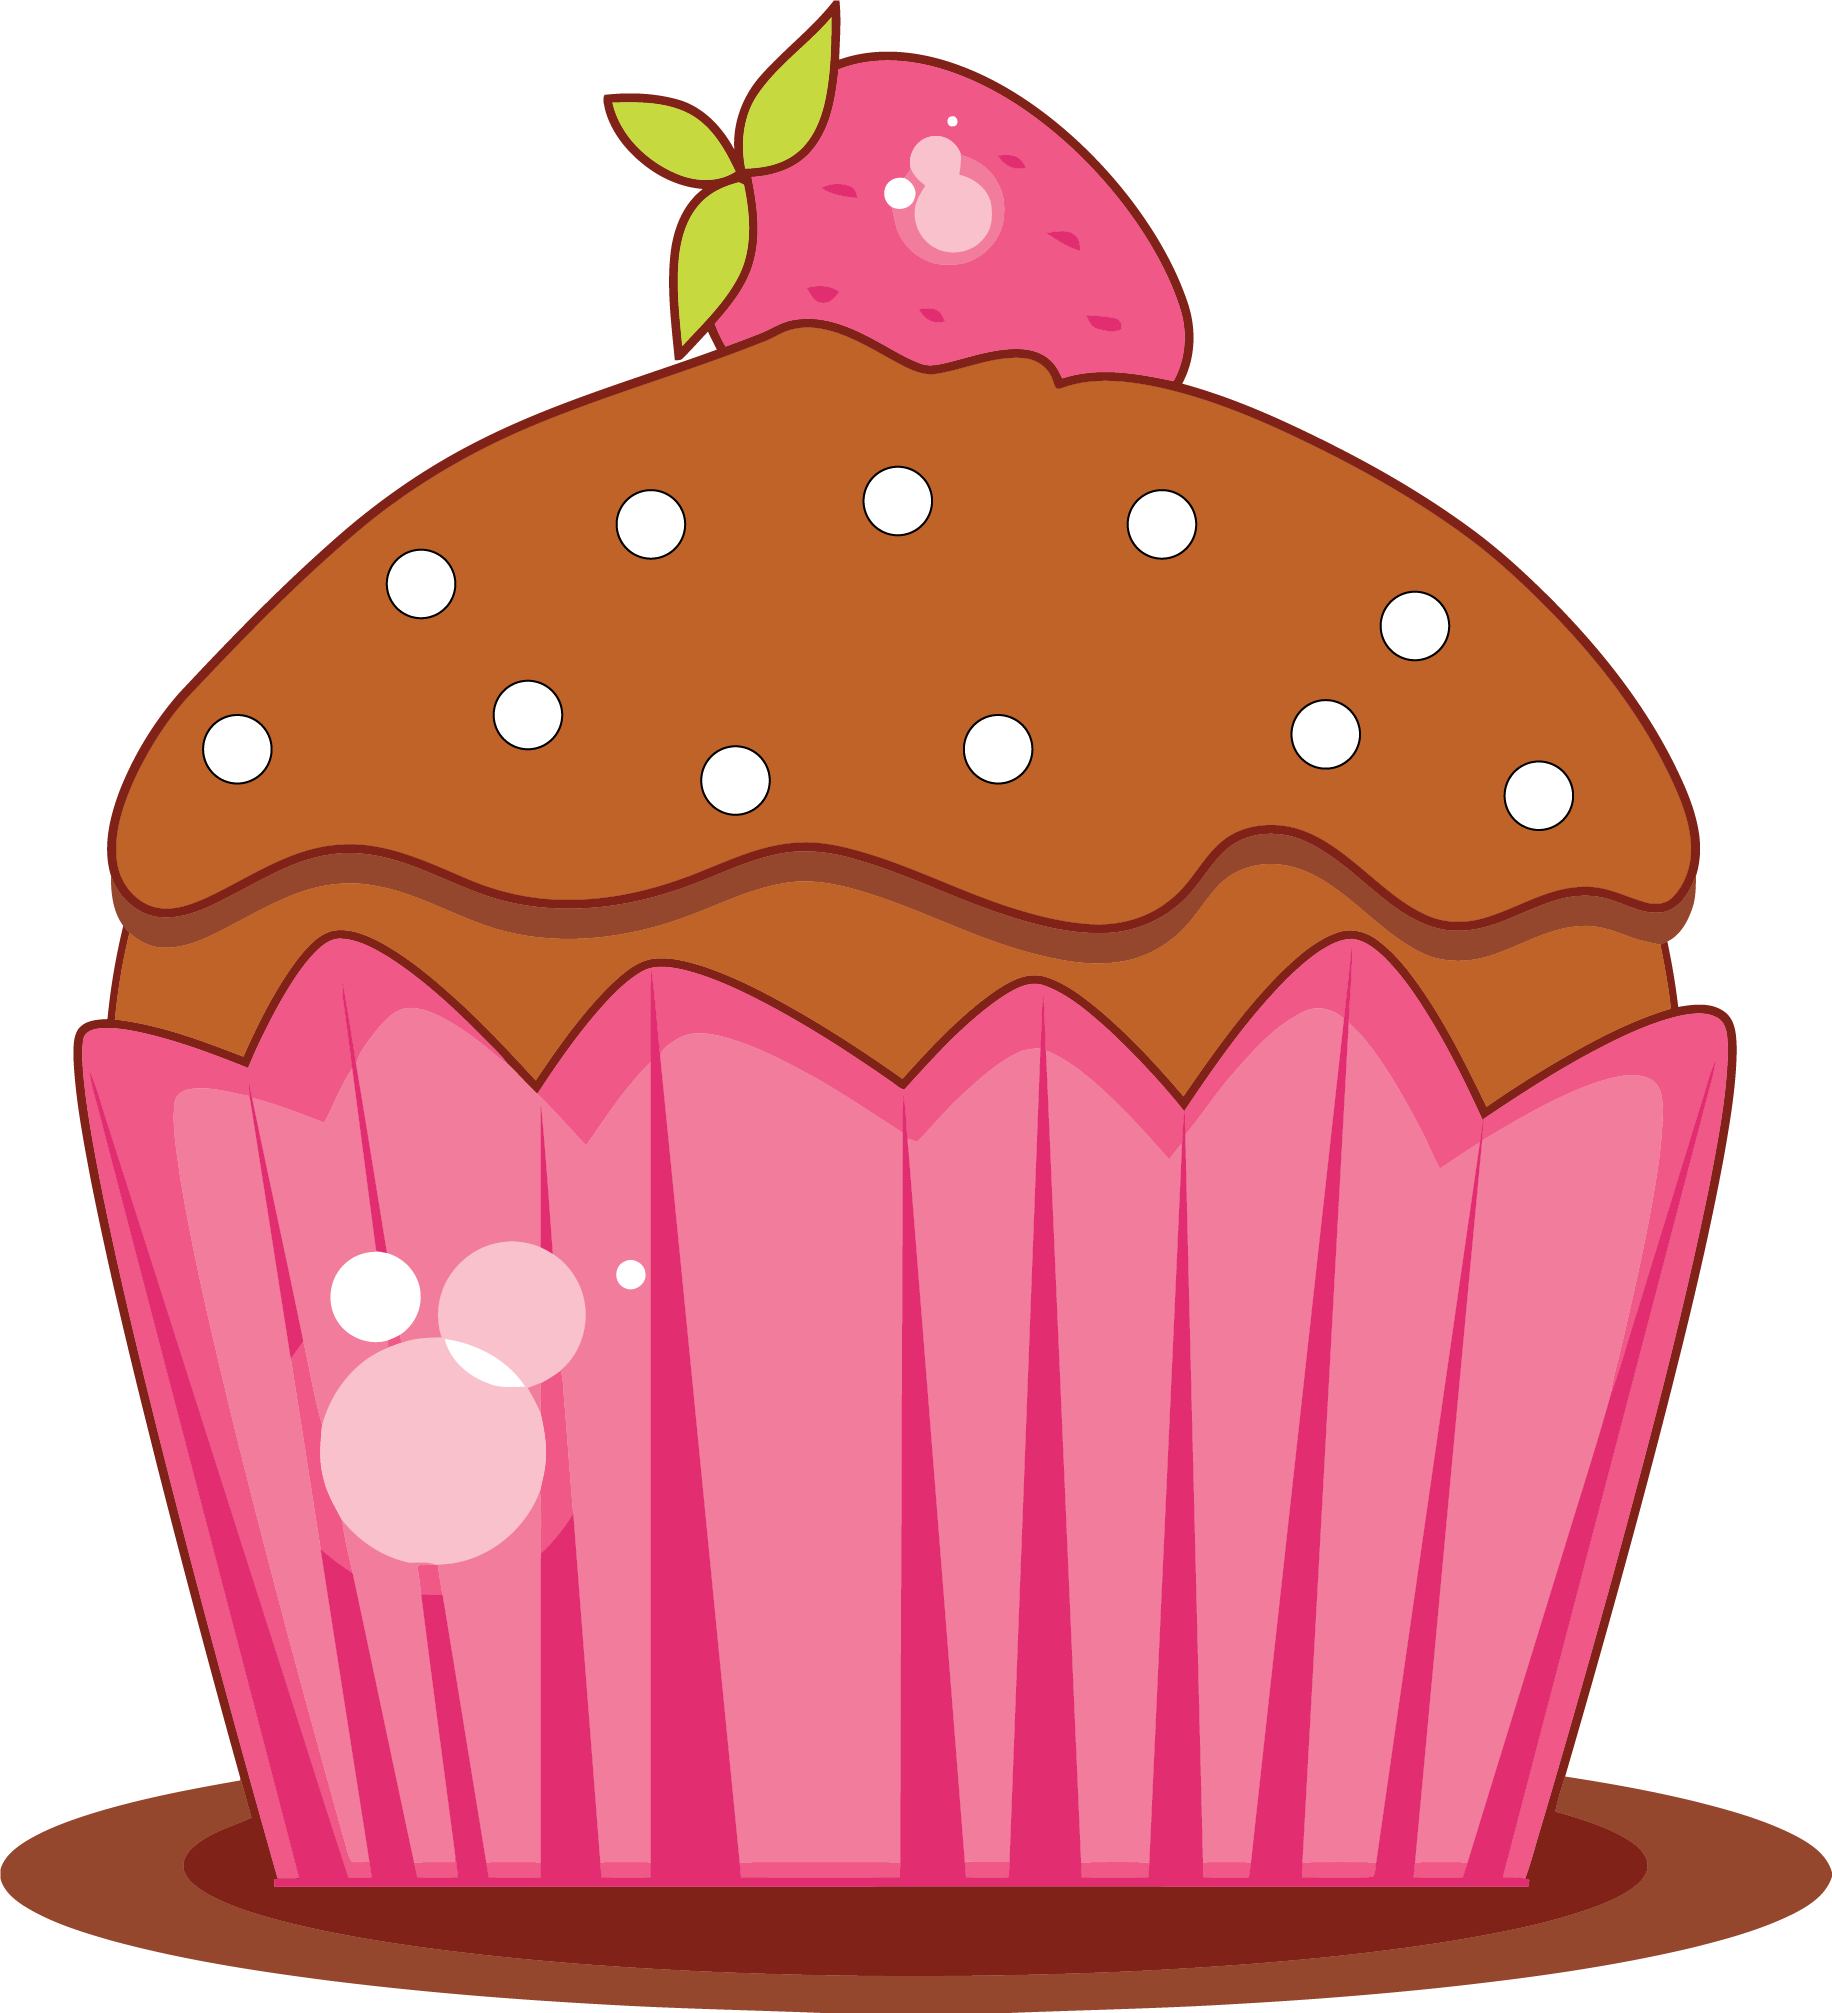 Truck clipart cupcake. Sweet png clipartly comclipartly